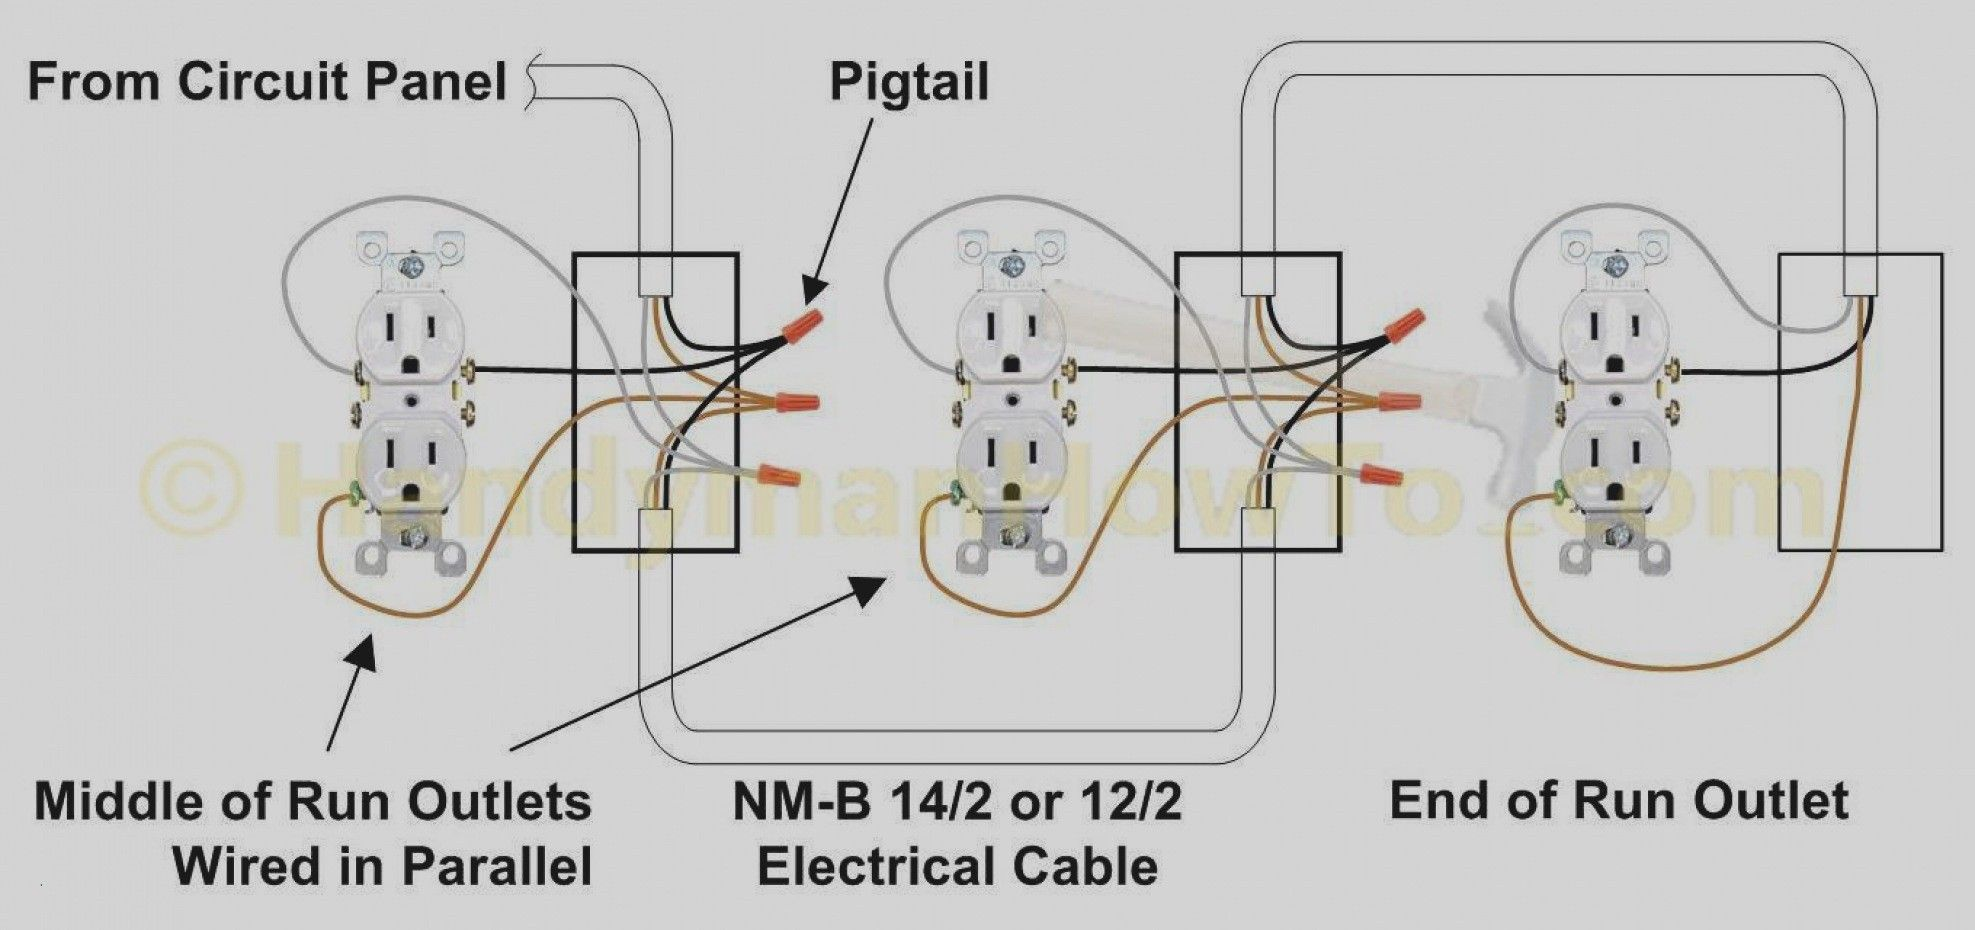 [DIAGRAM_38IS]  Wiring Diagram For House Outlets | Outlet wiring, Wiring a plug, Electrical  wiring diagram | Ac Receptacle Wiring Diagram |  | Pinterest